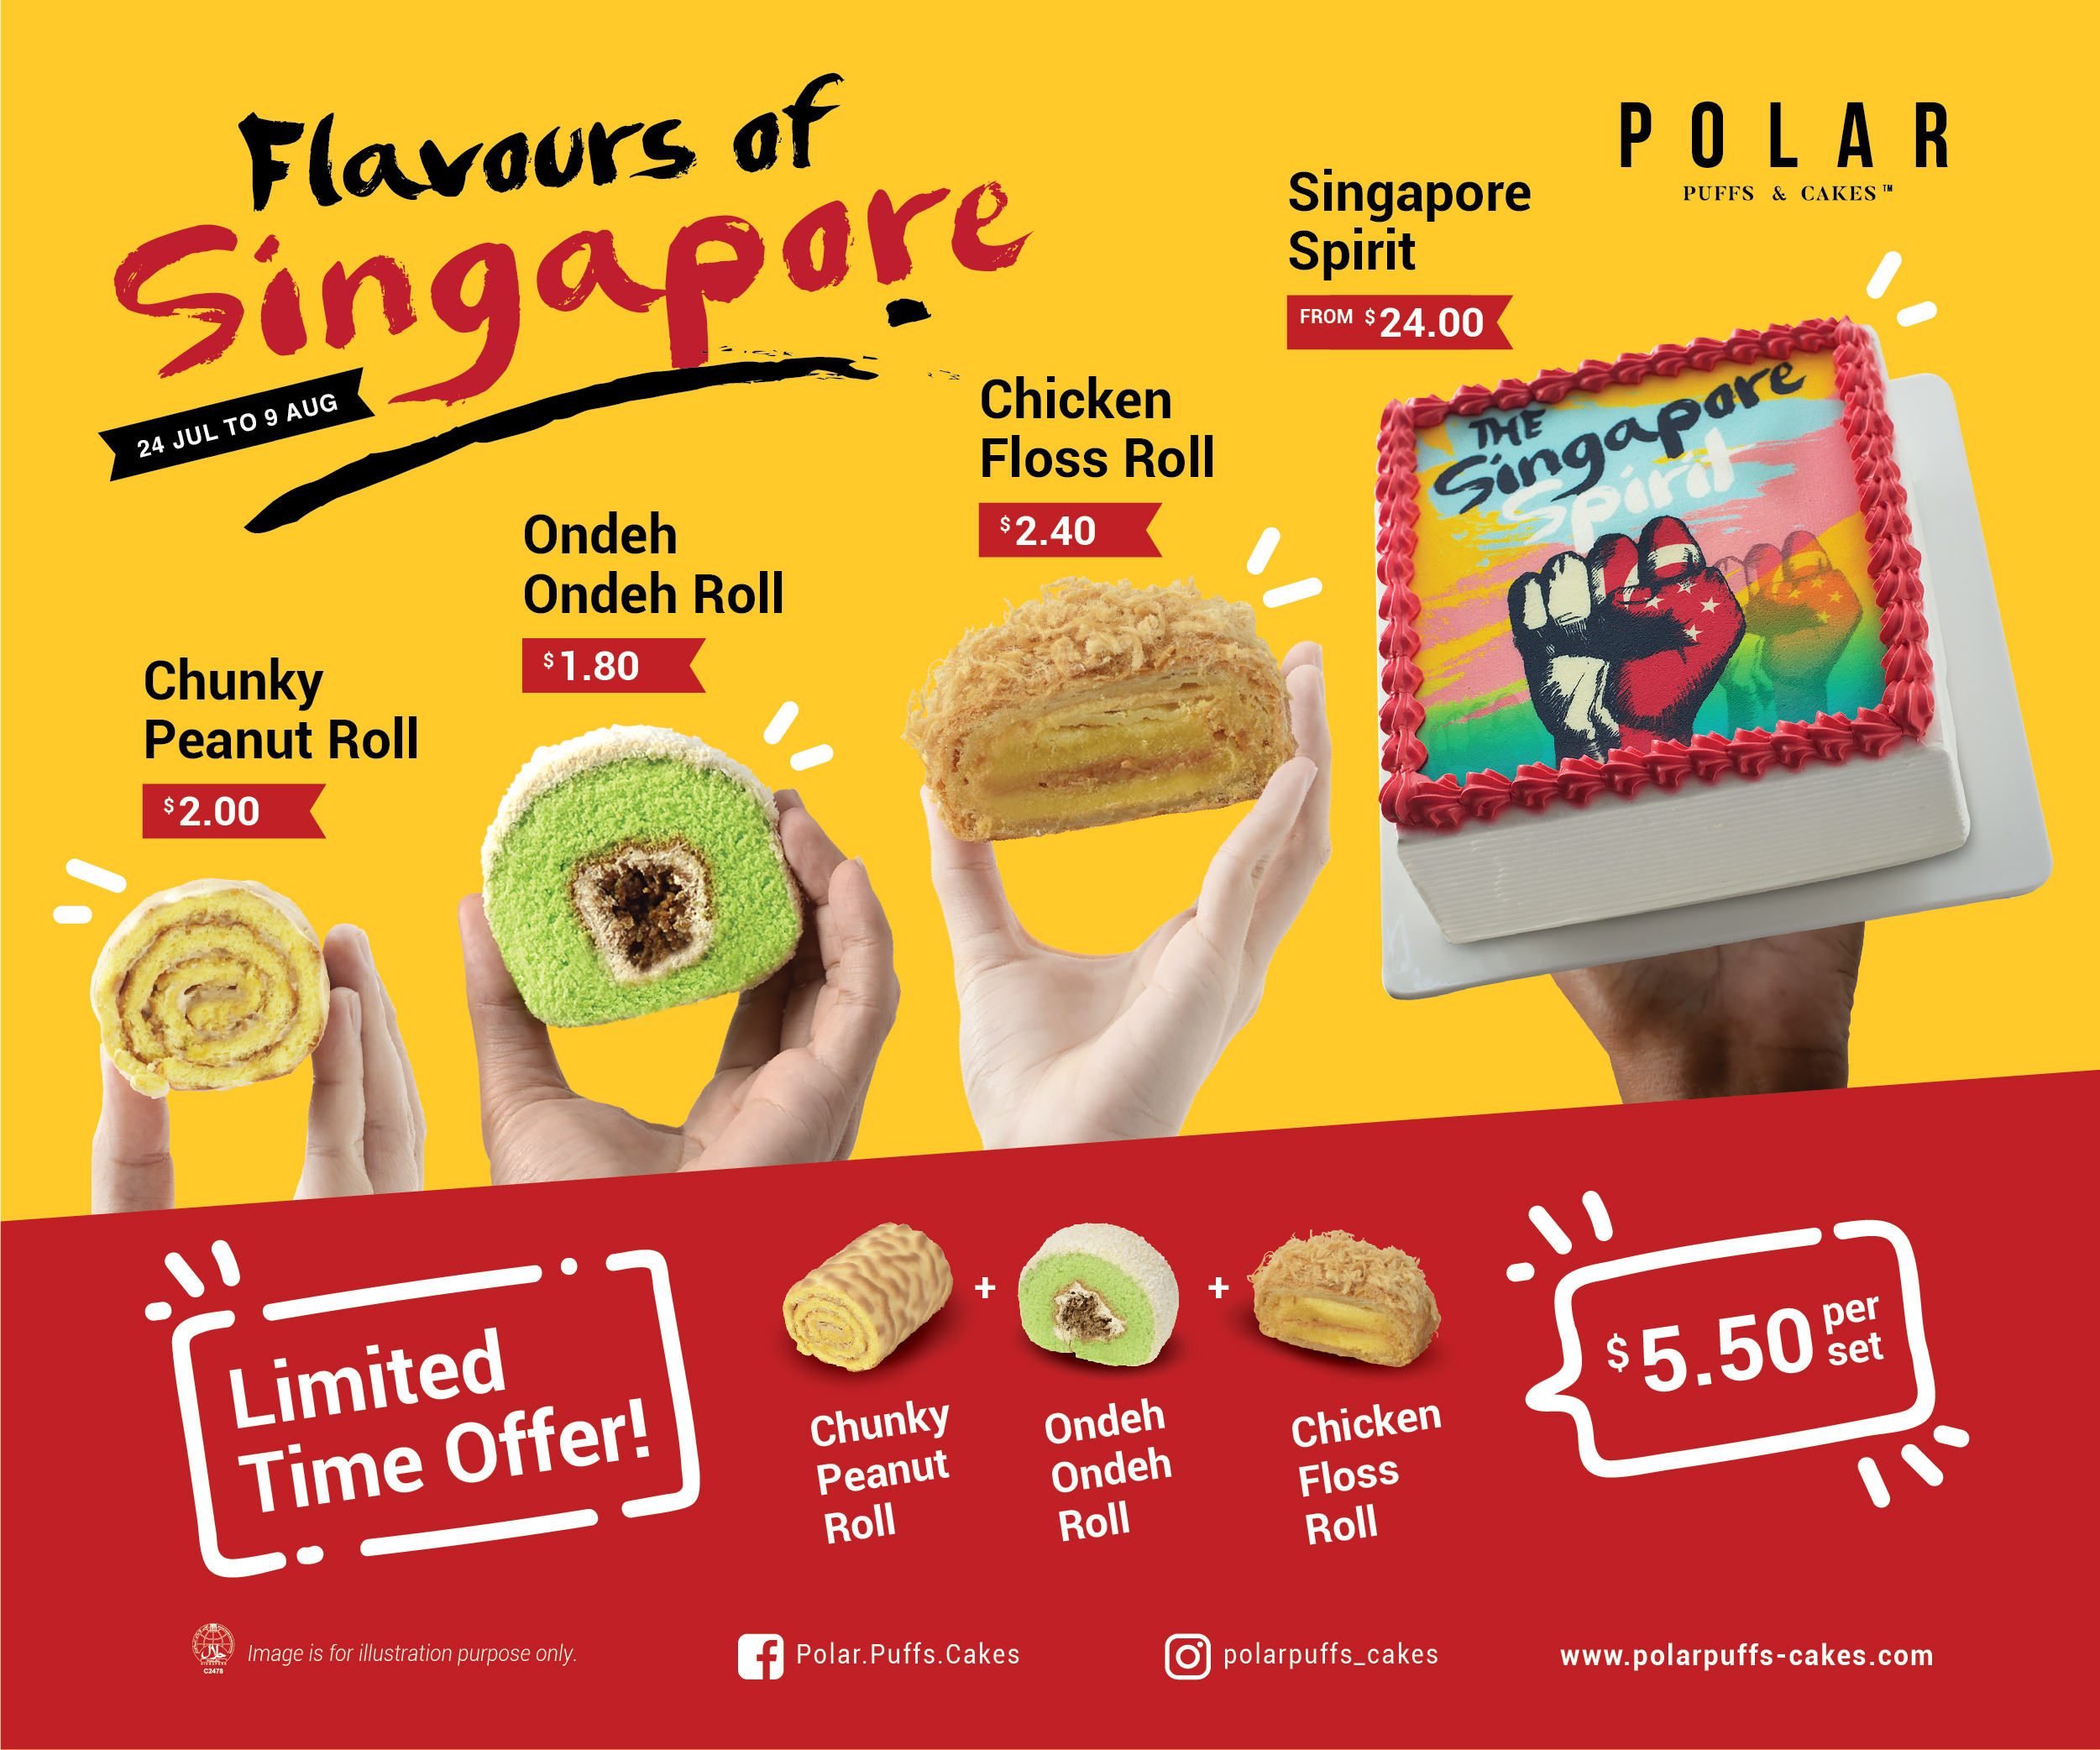 Polar Puffs & Cakes - Flavours of Singapore